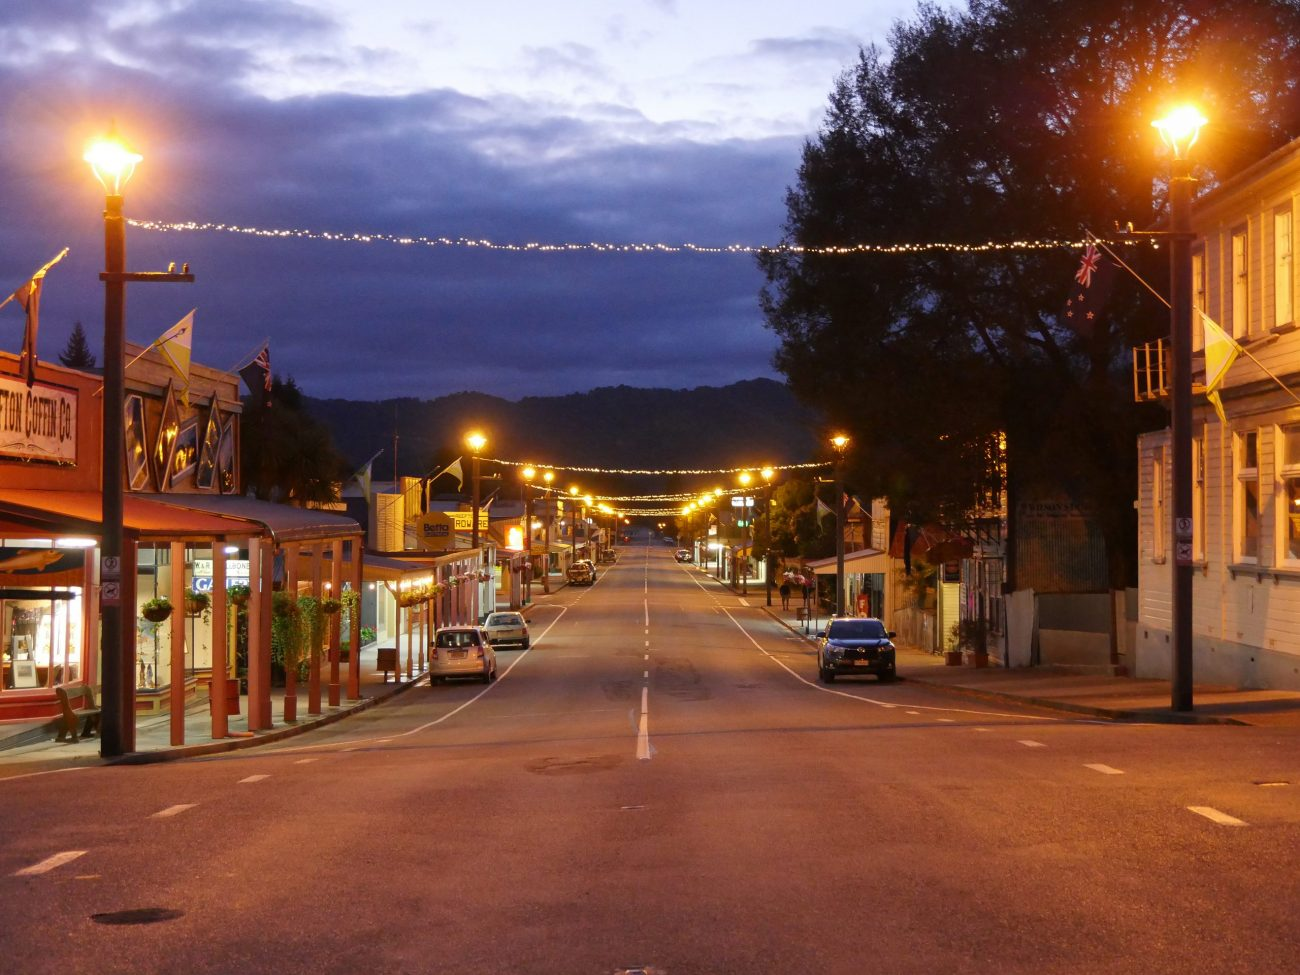 Reefton will light up your life